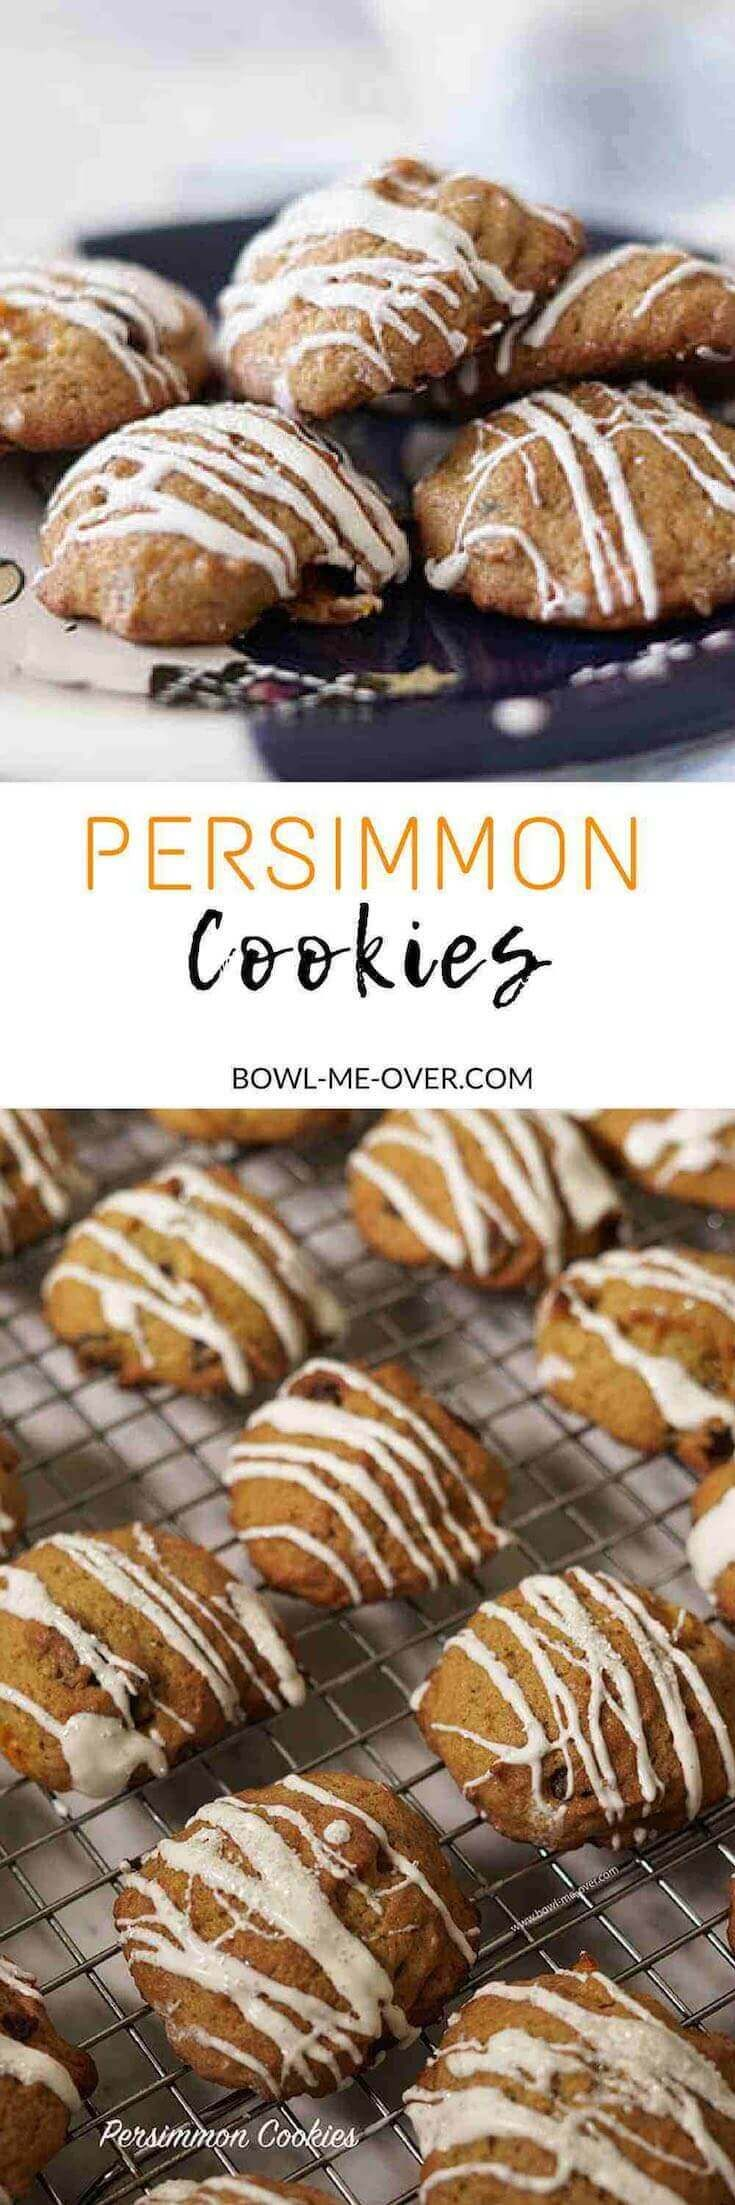 Old fashioned Persimmon Cookies are sweet and delicious. Baked with nutmeg, chocked full of nuts and cranberries and drizzled with white chocolate these cookies will be Santa's favorite this holiday season! via @bowlmeover